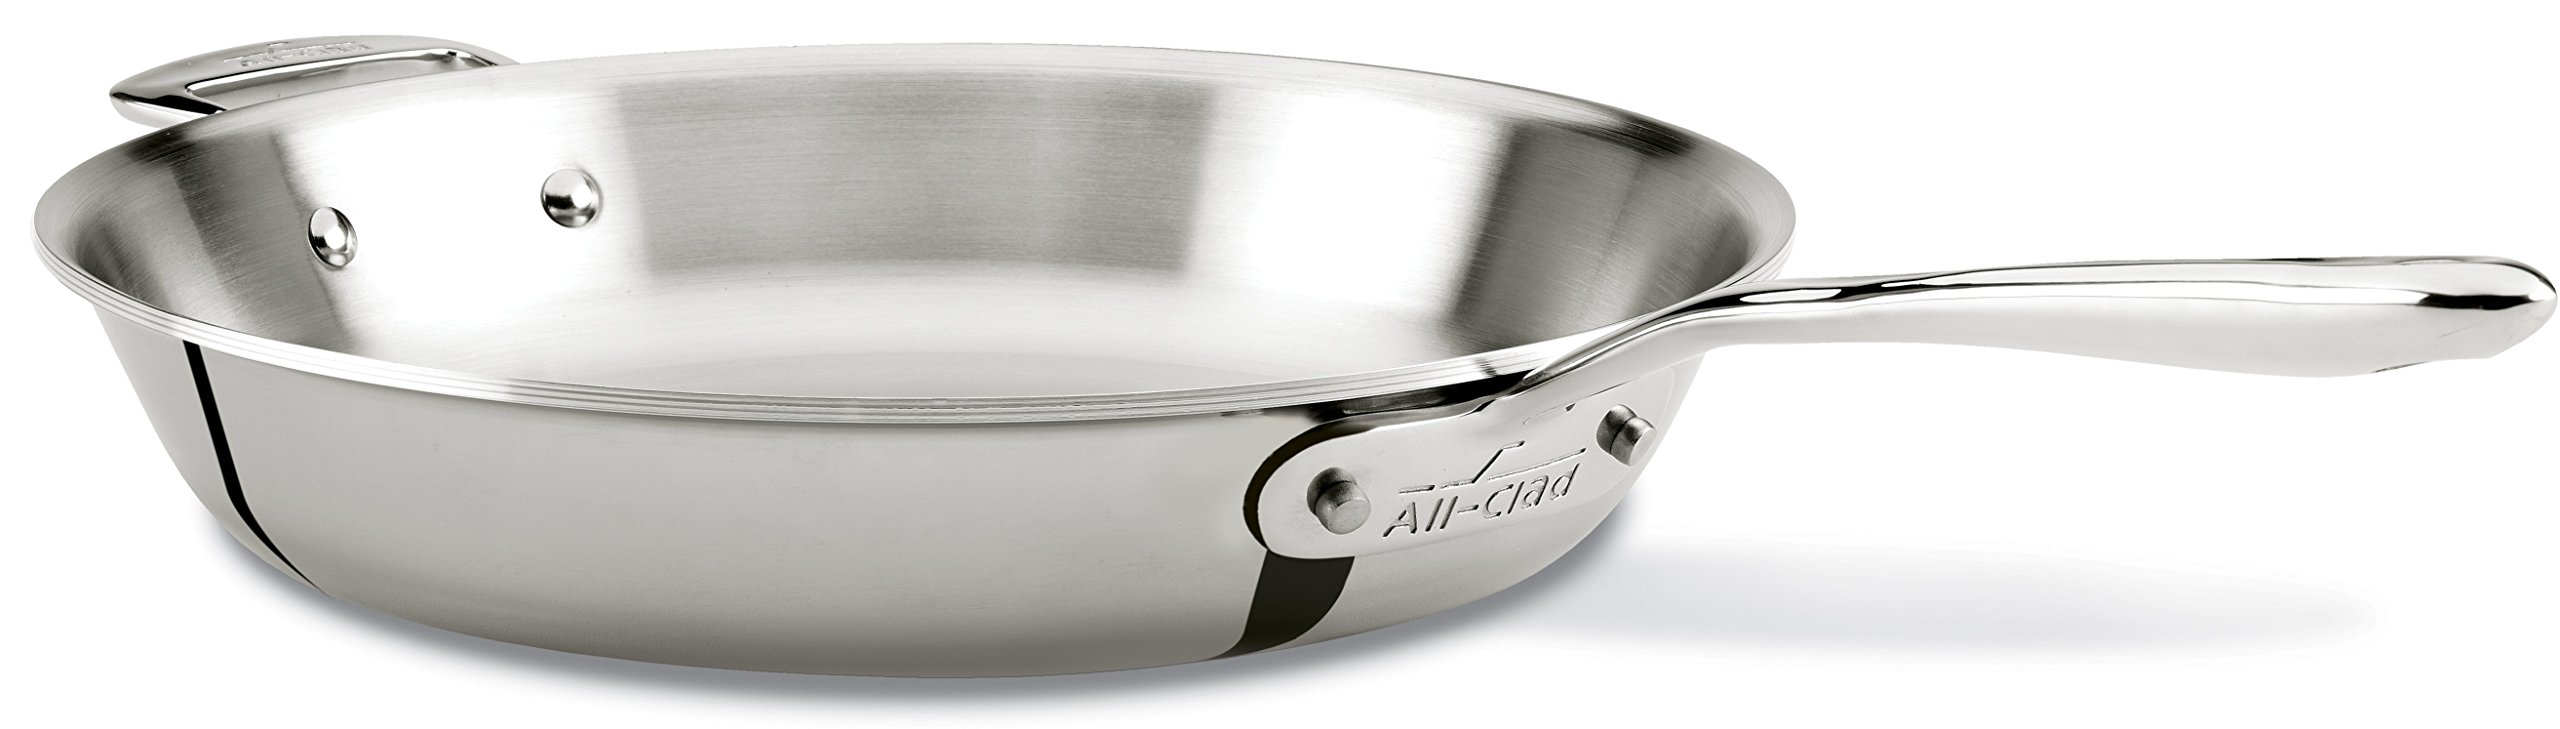 All-Clad SD75712 D7 18/10 Stainless Steel 7-Ply Bonded Construction Dishwasher Safe Oven Safe Skillet Fry Pan, 12-Inch, Silver